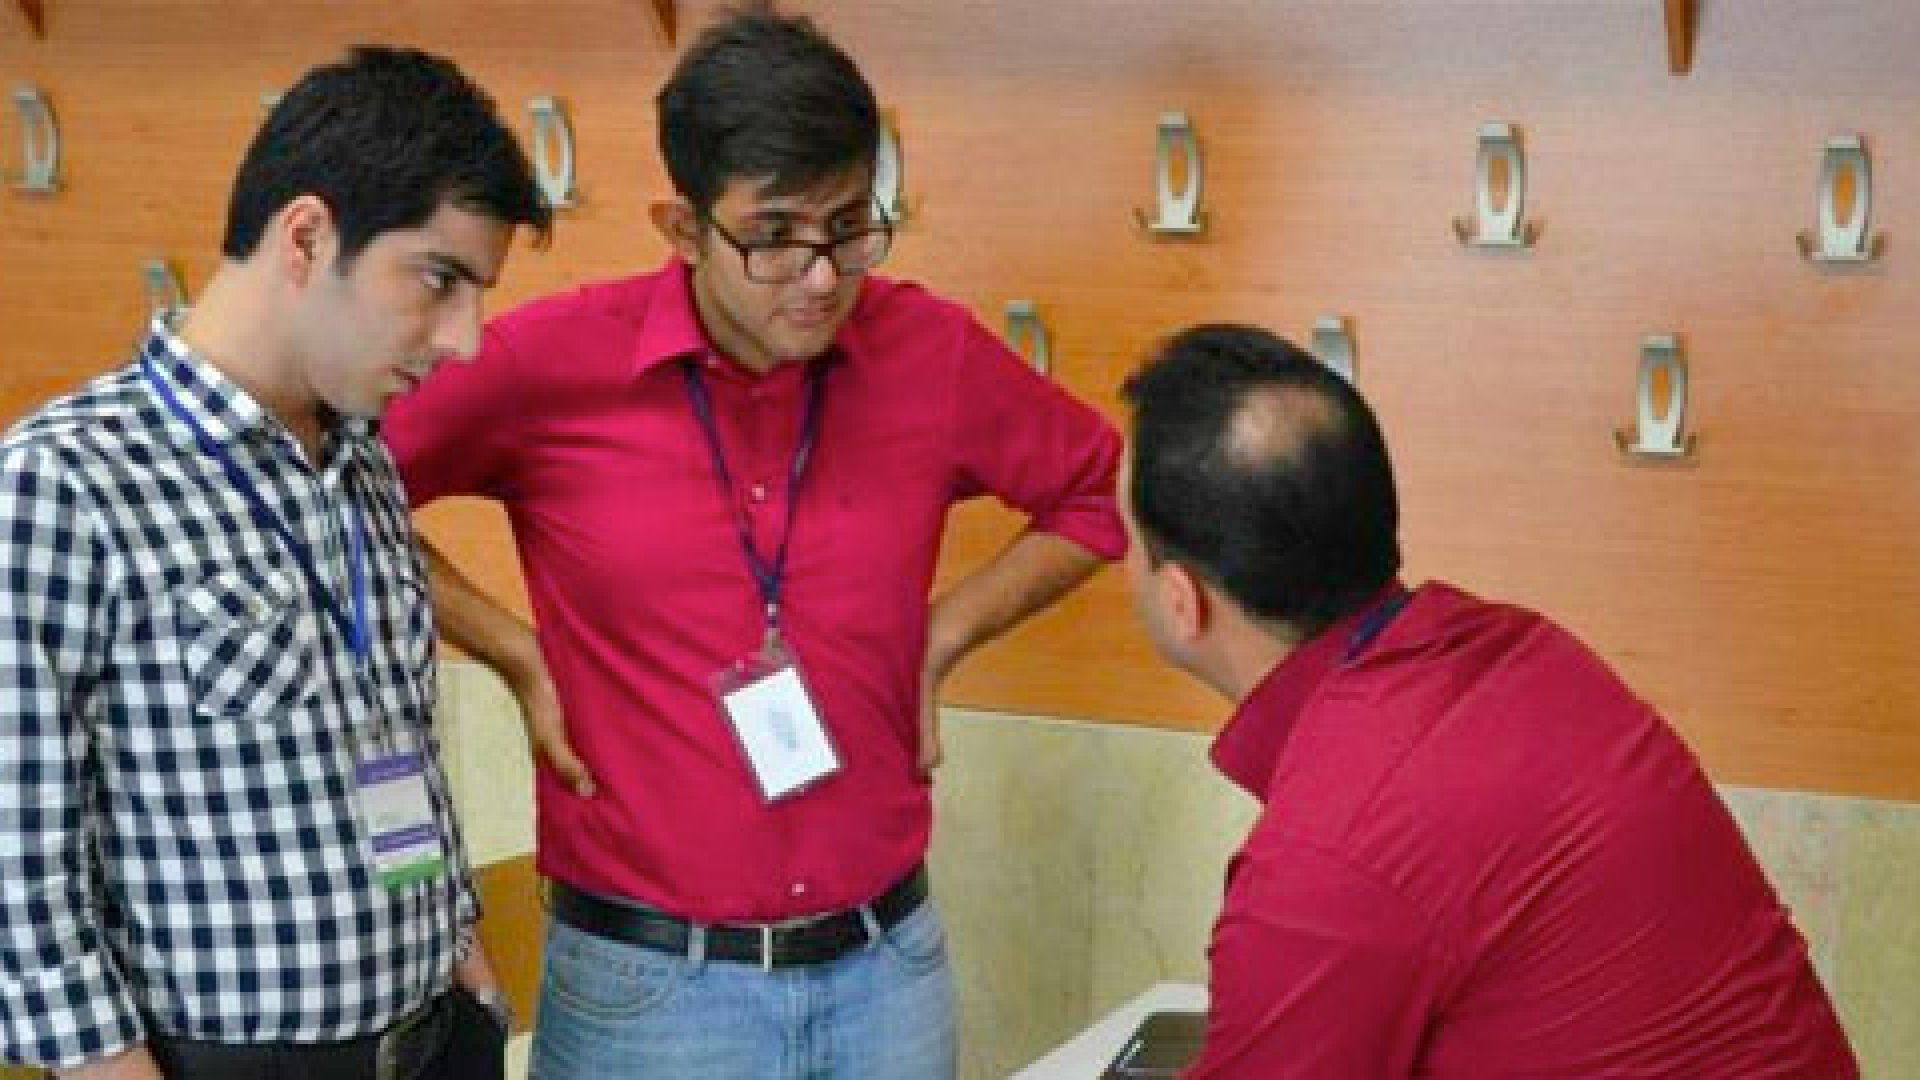 Teams collaborate on their ideas at Iran's first Startup Weekend.